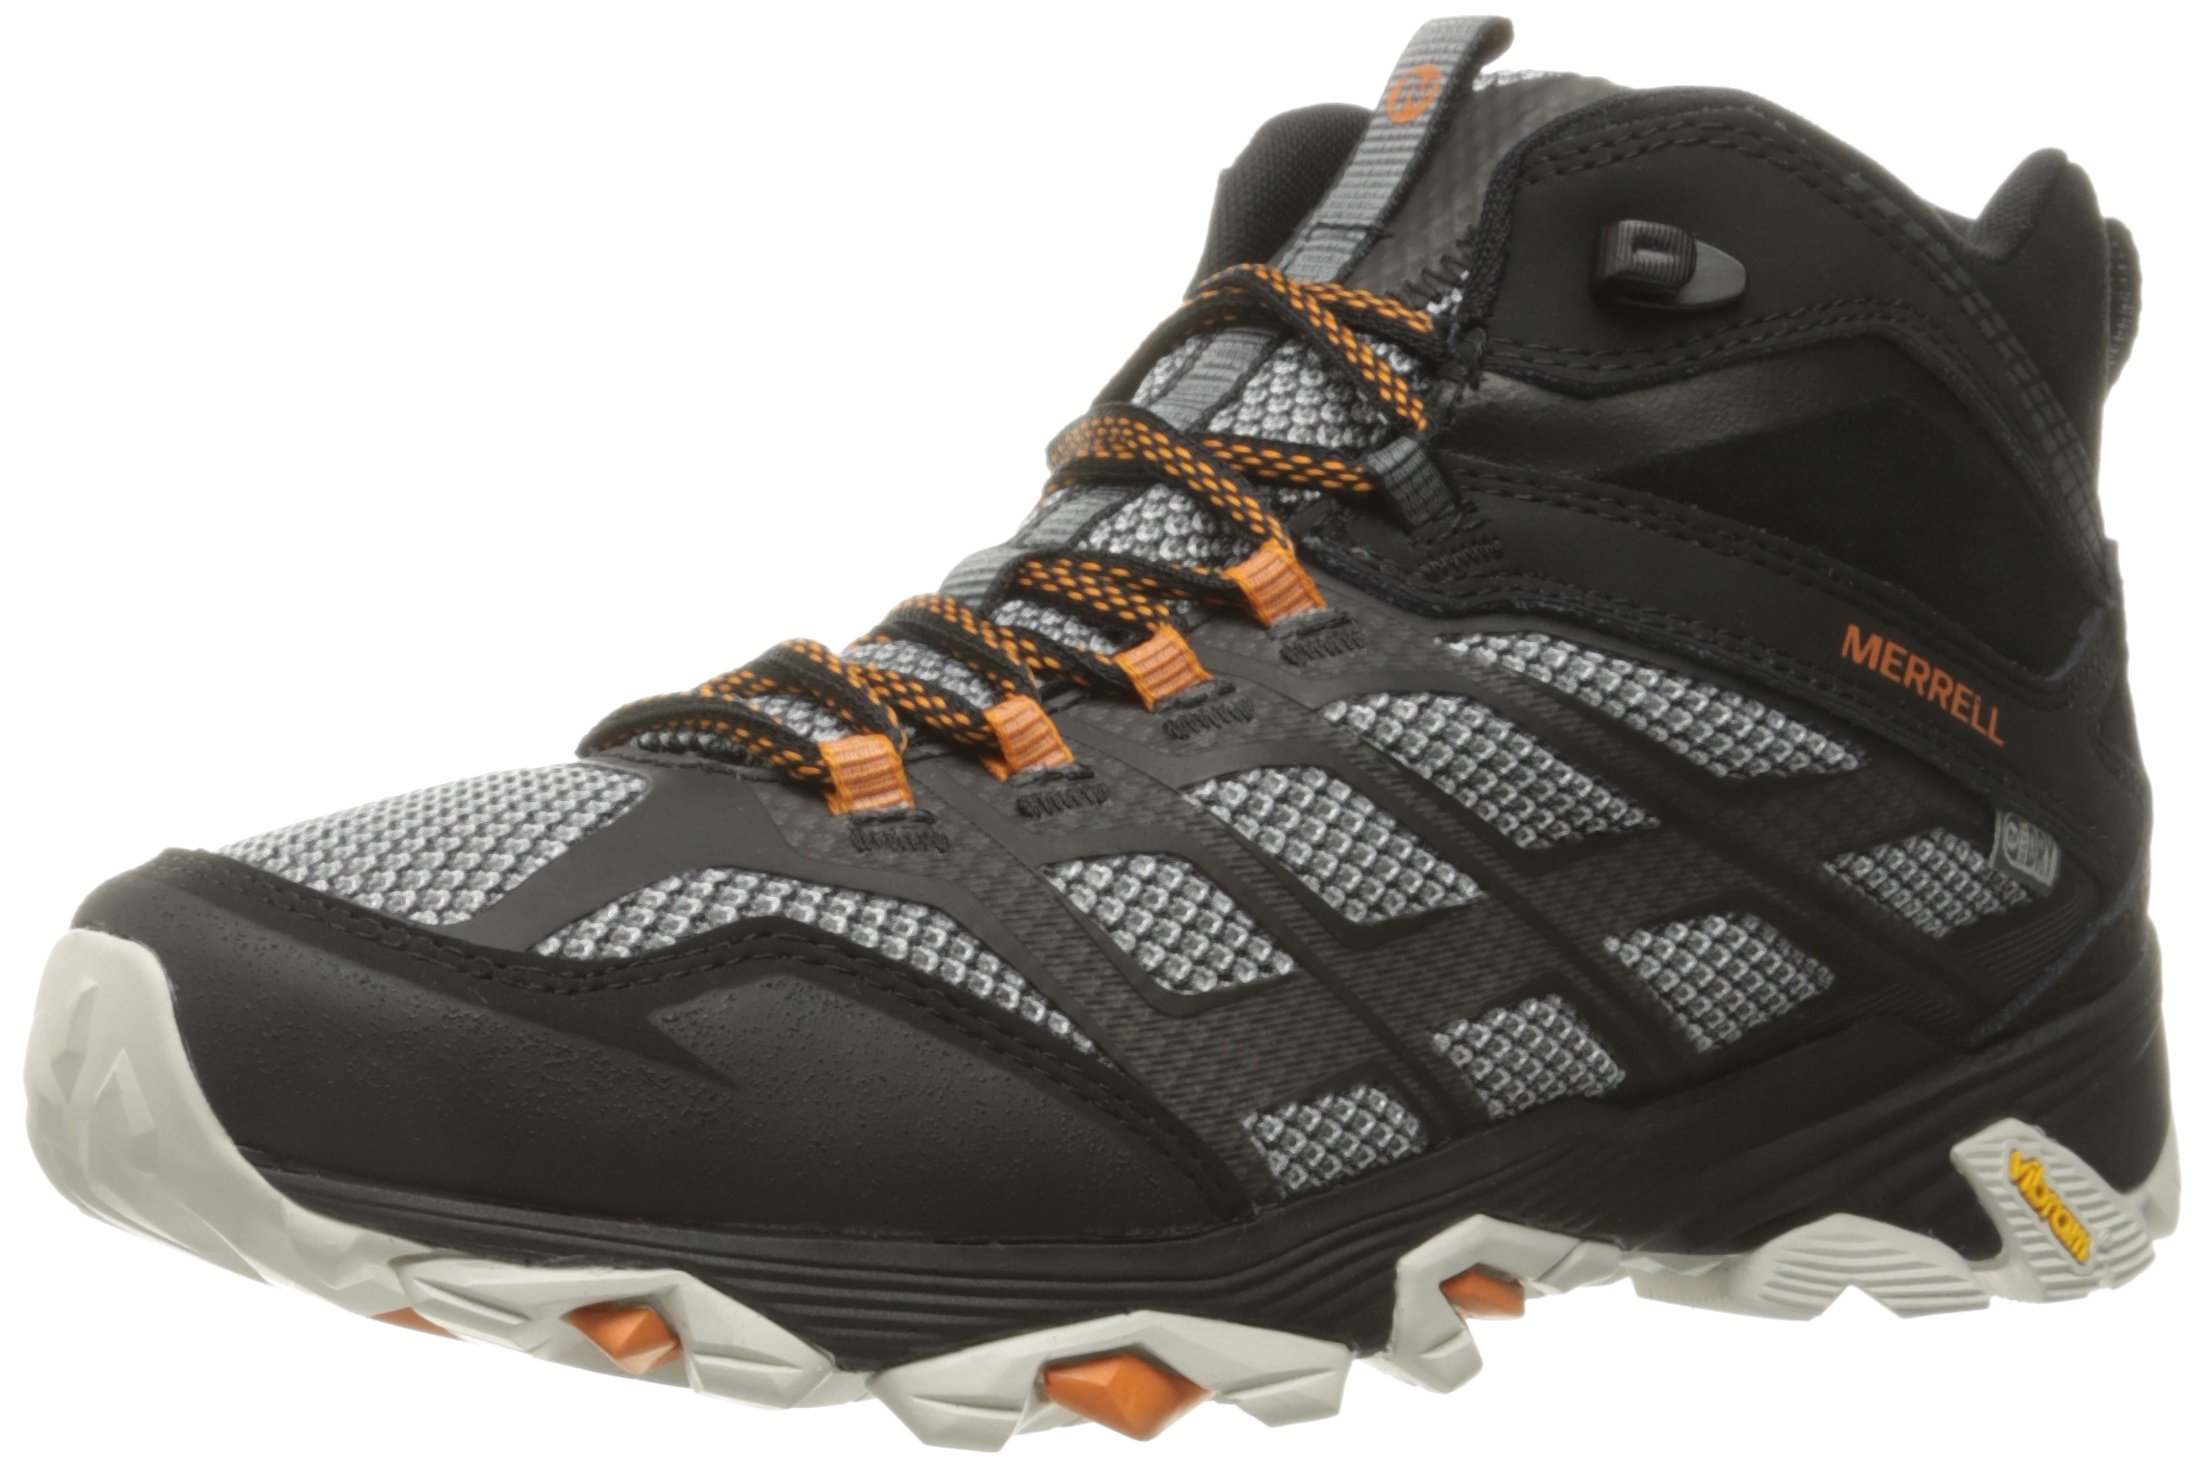 Merrell Men's Moab FST Mid Waterproof Hiking Shoe, Black, 9.5 M US